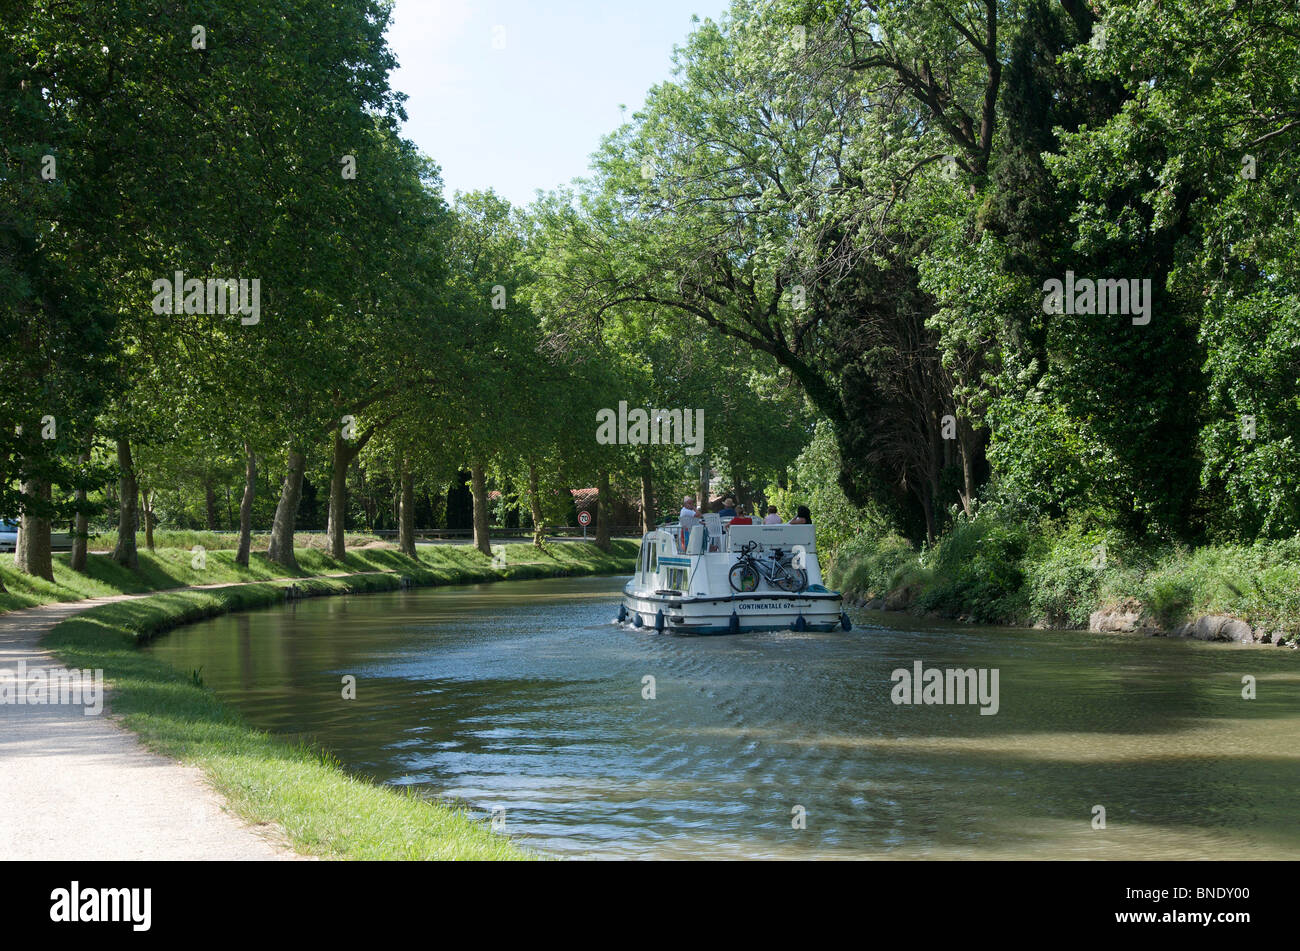 Canal du Midi in Languedoc Rousillon, France, Europe - with barge canal boat - Stock Image